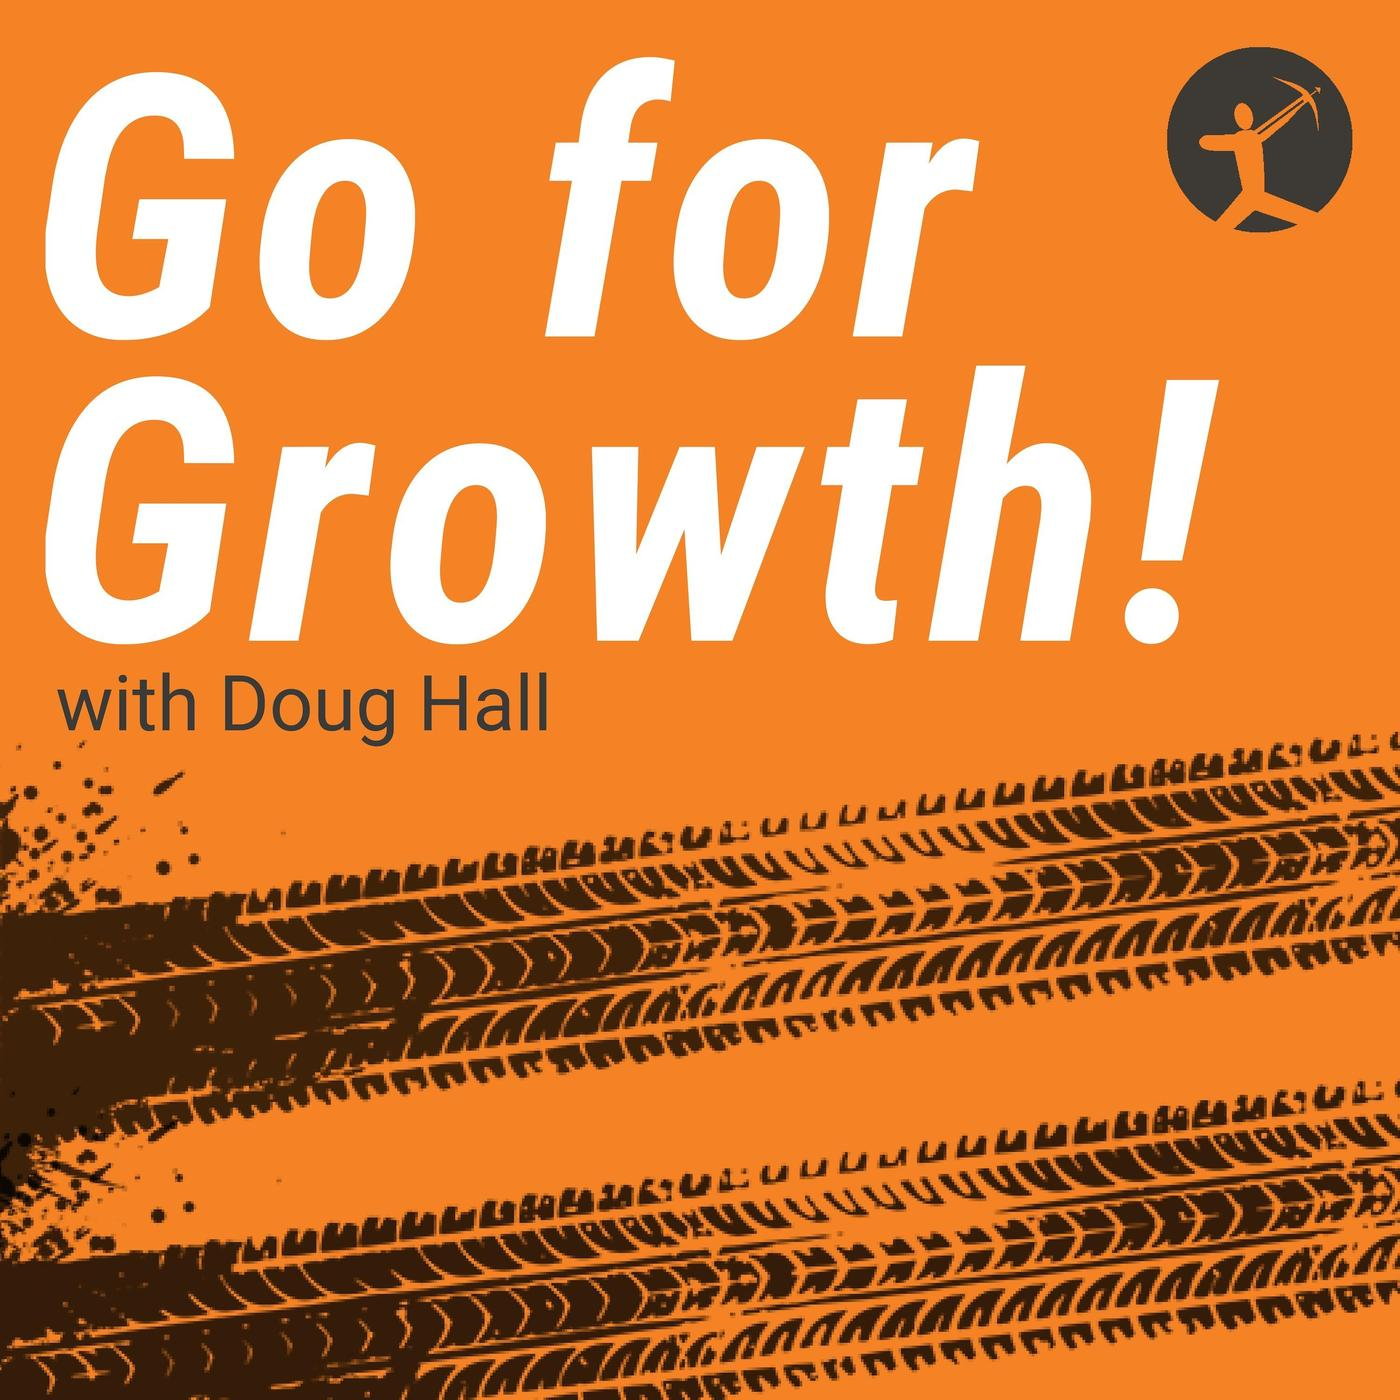 go-for-growth-with-doug-hall-doug-hall-Gop56ZOsWJH-gYTHv2-oCJt.1400x1400